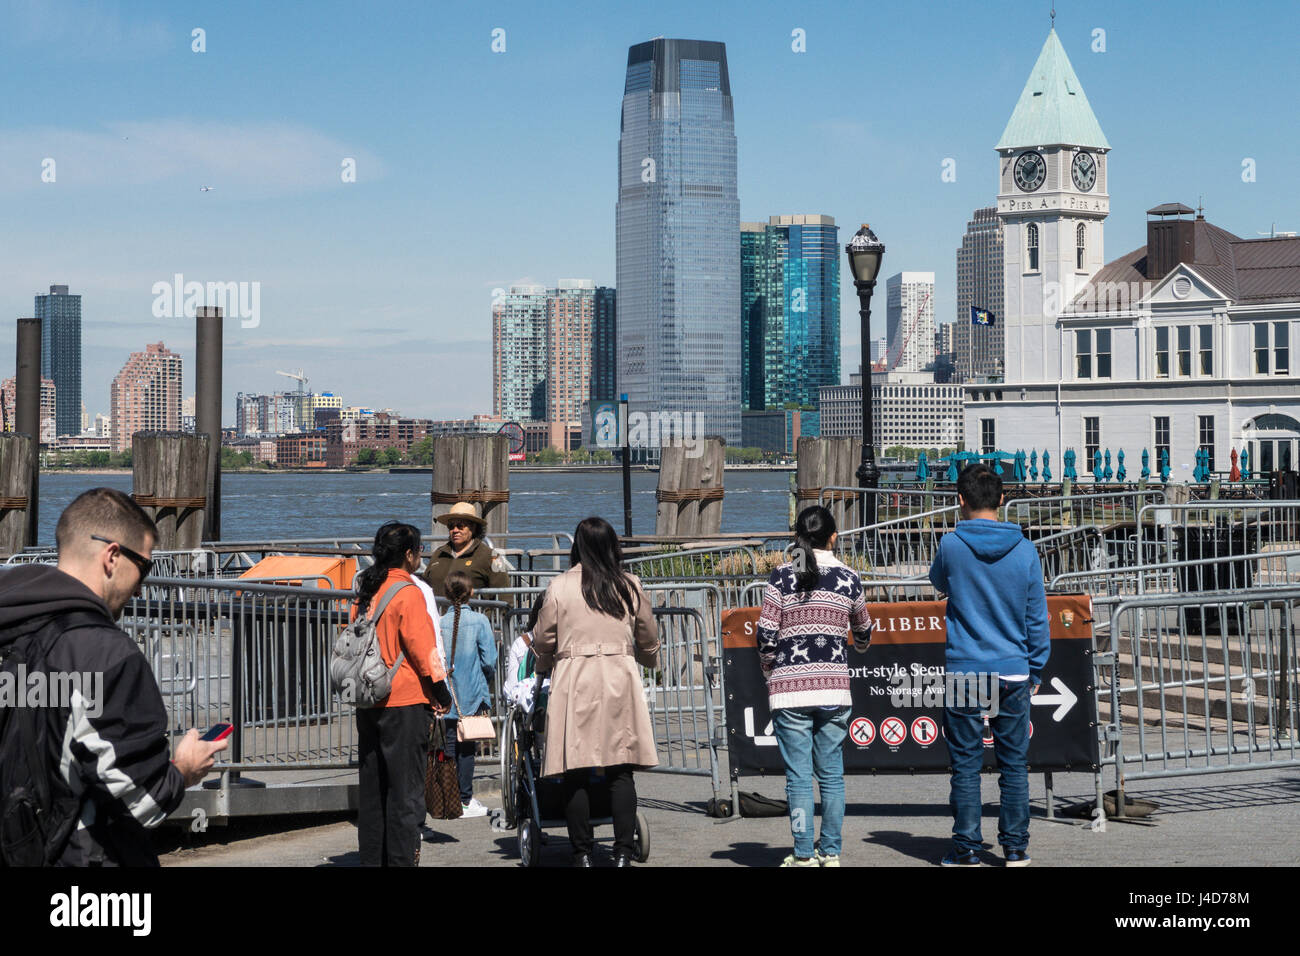 Battery Park, New York City, USA Stockbild